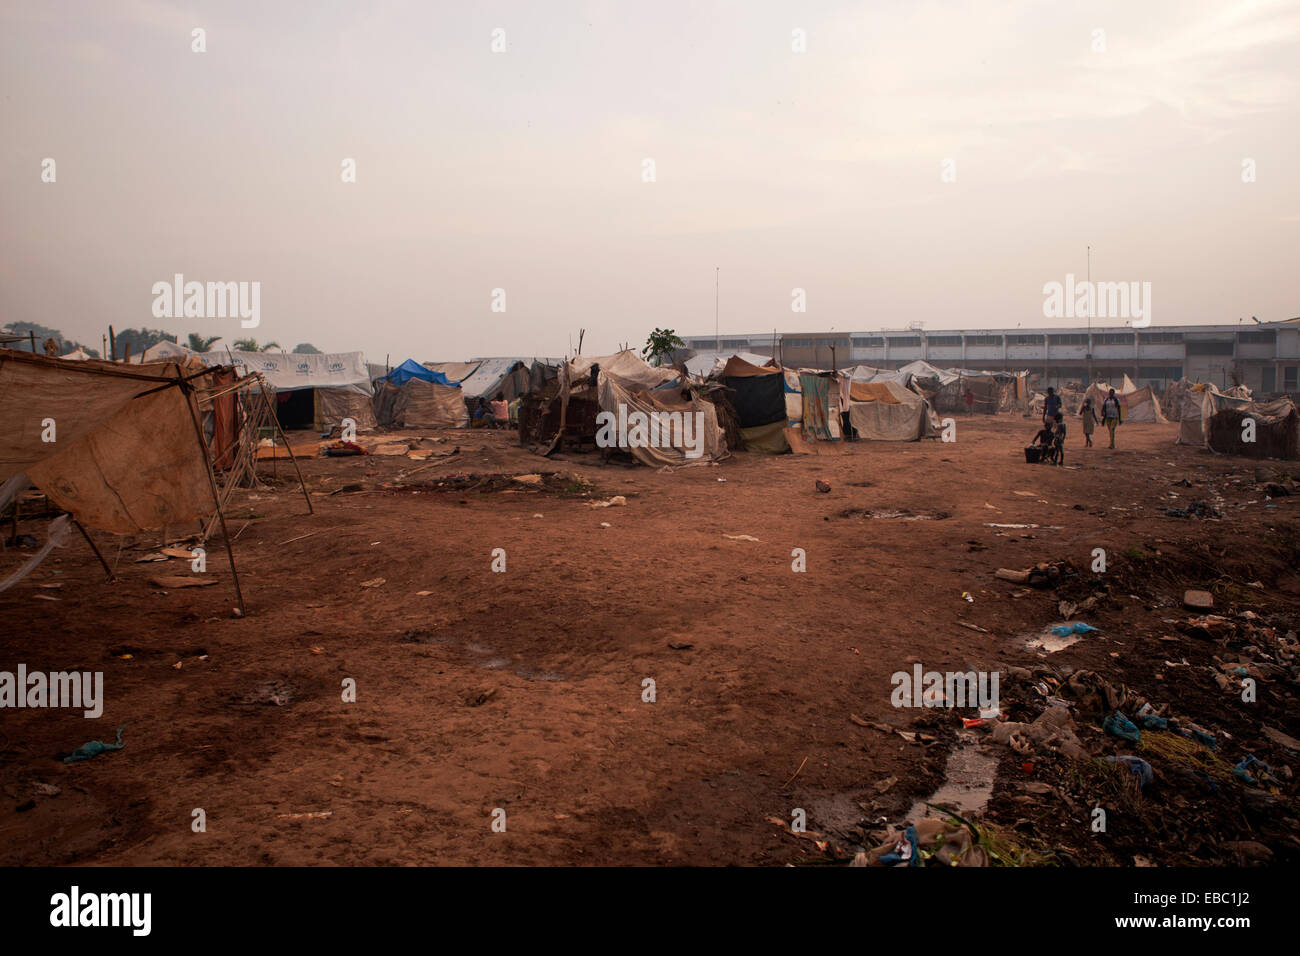 Mpoko camp for internally displaced persons, Bangui Central African Republic Stock Photo